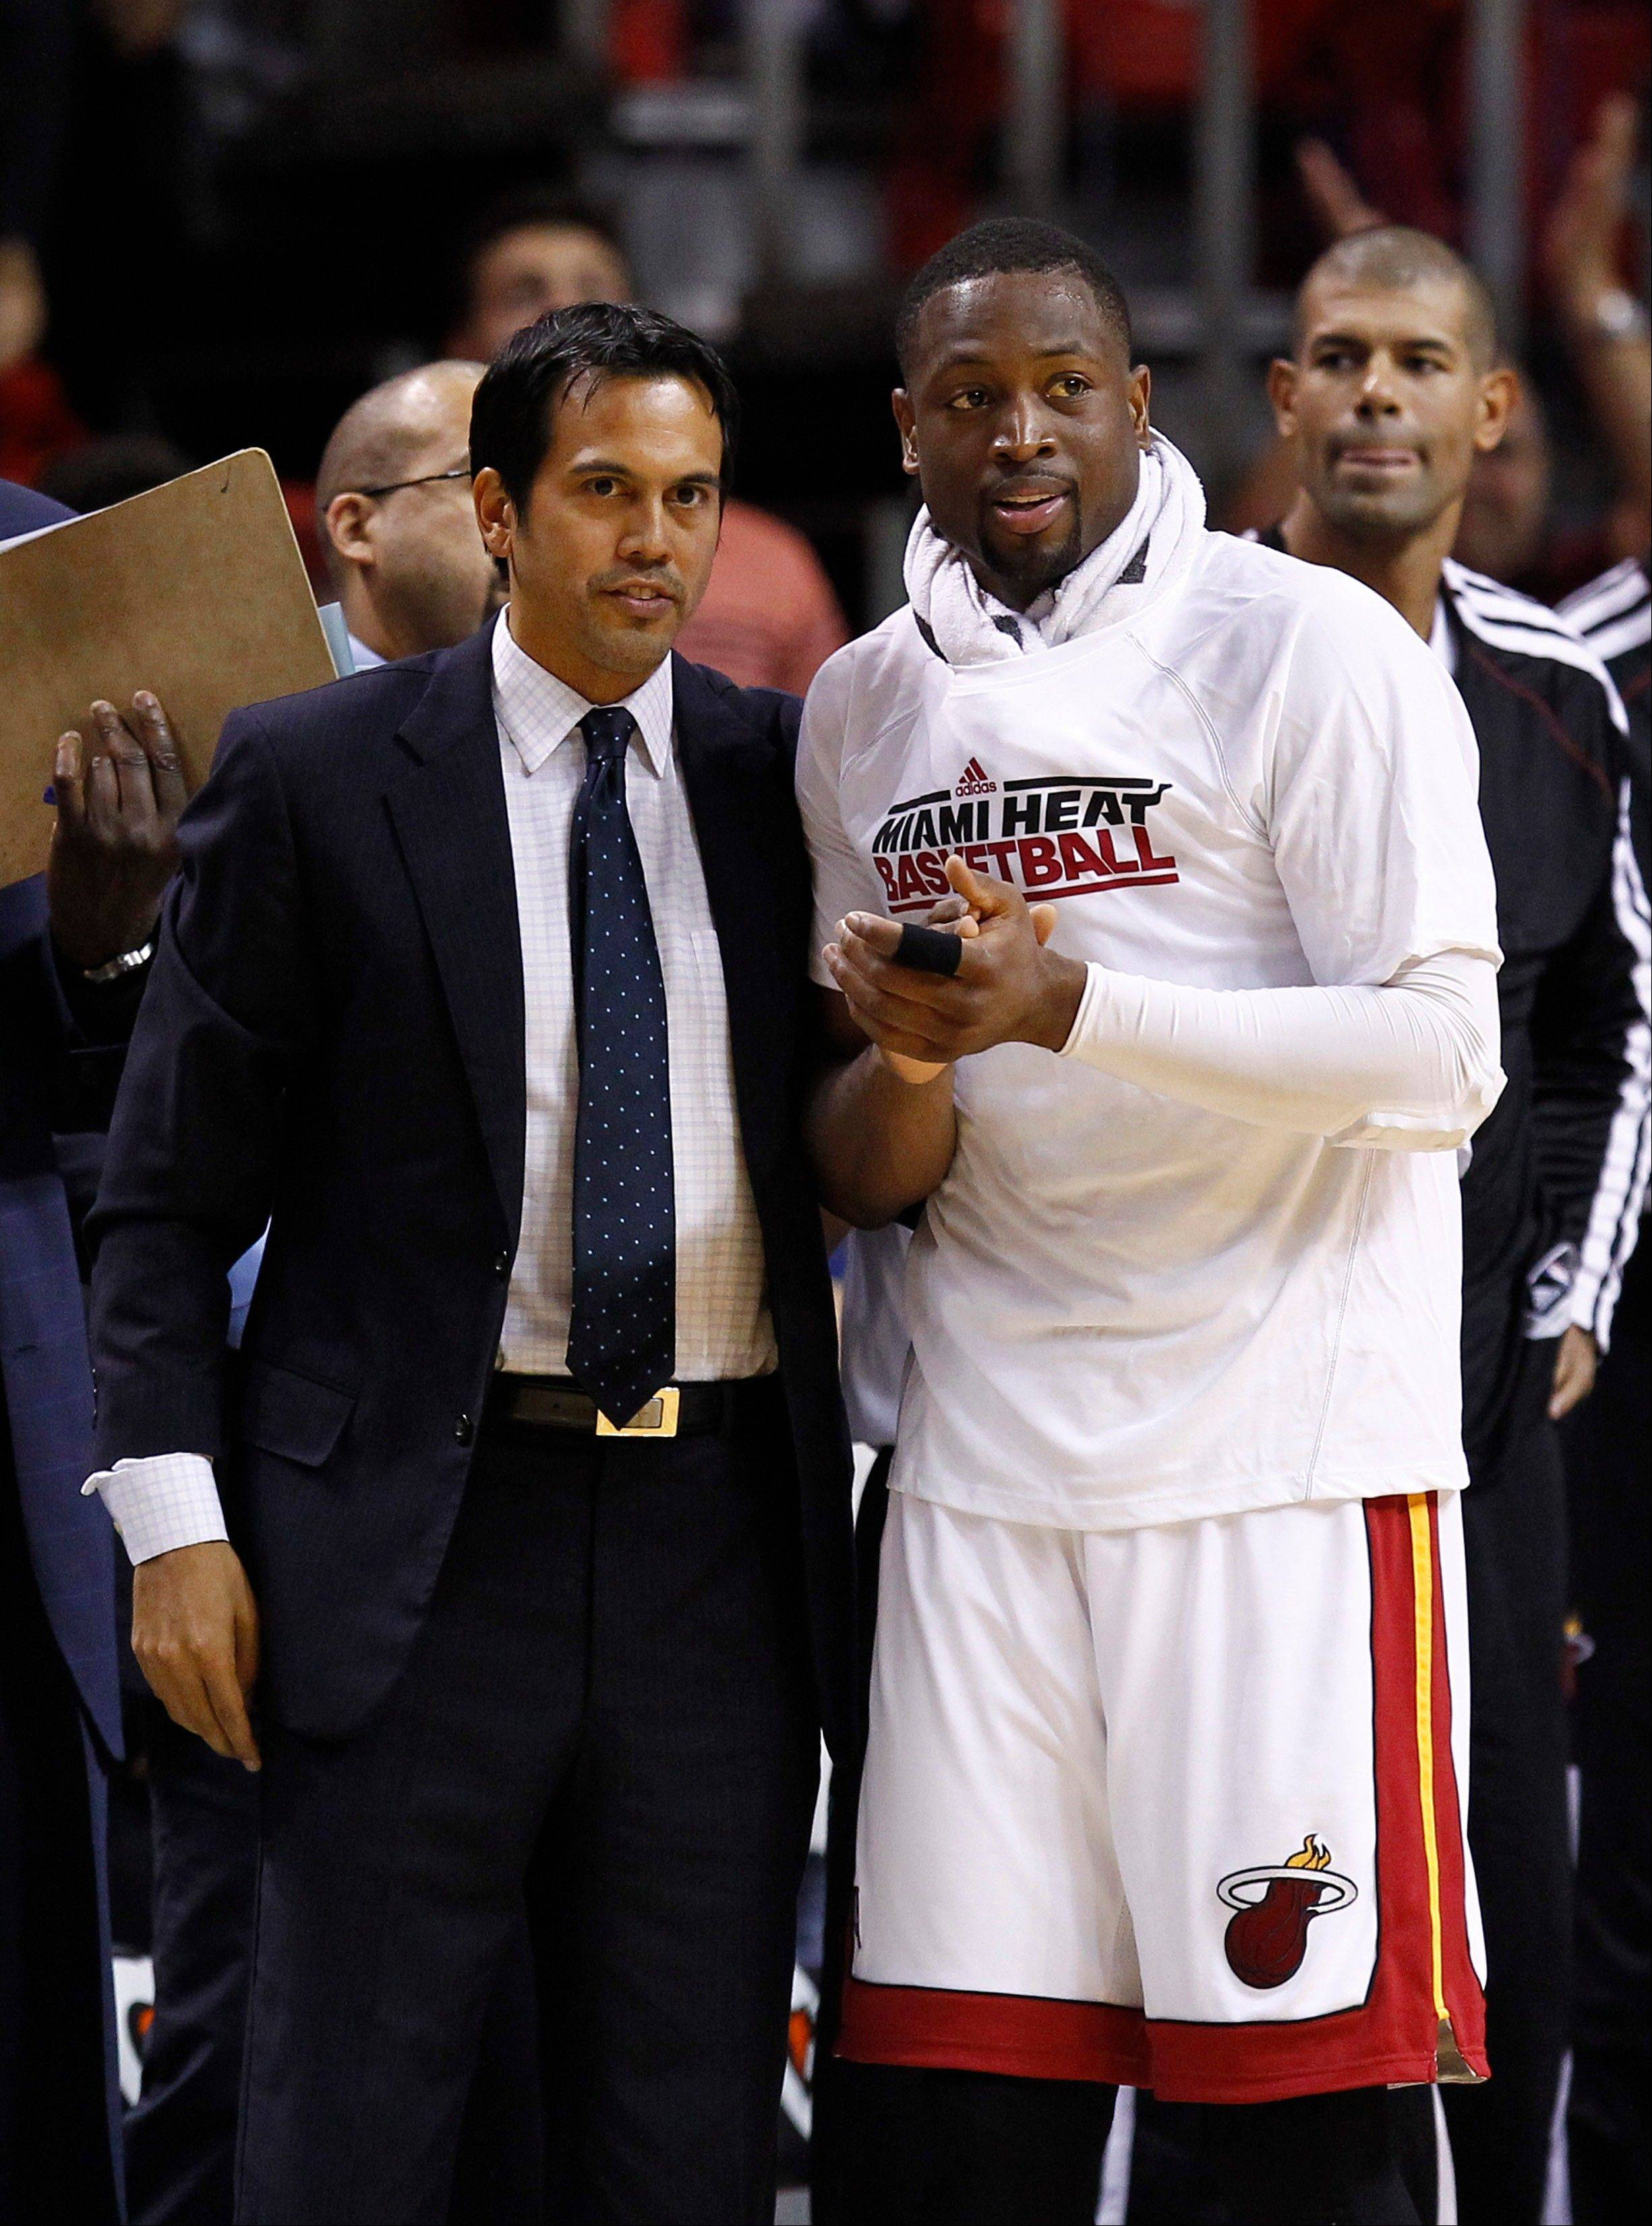 According to a survey of league GMs, Miami Heat coach Erik Spoelstra, left, and Dwyane Wade will be heading back to the NBA Finals this season.